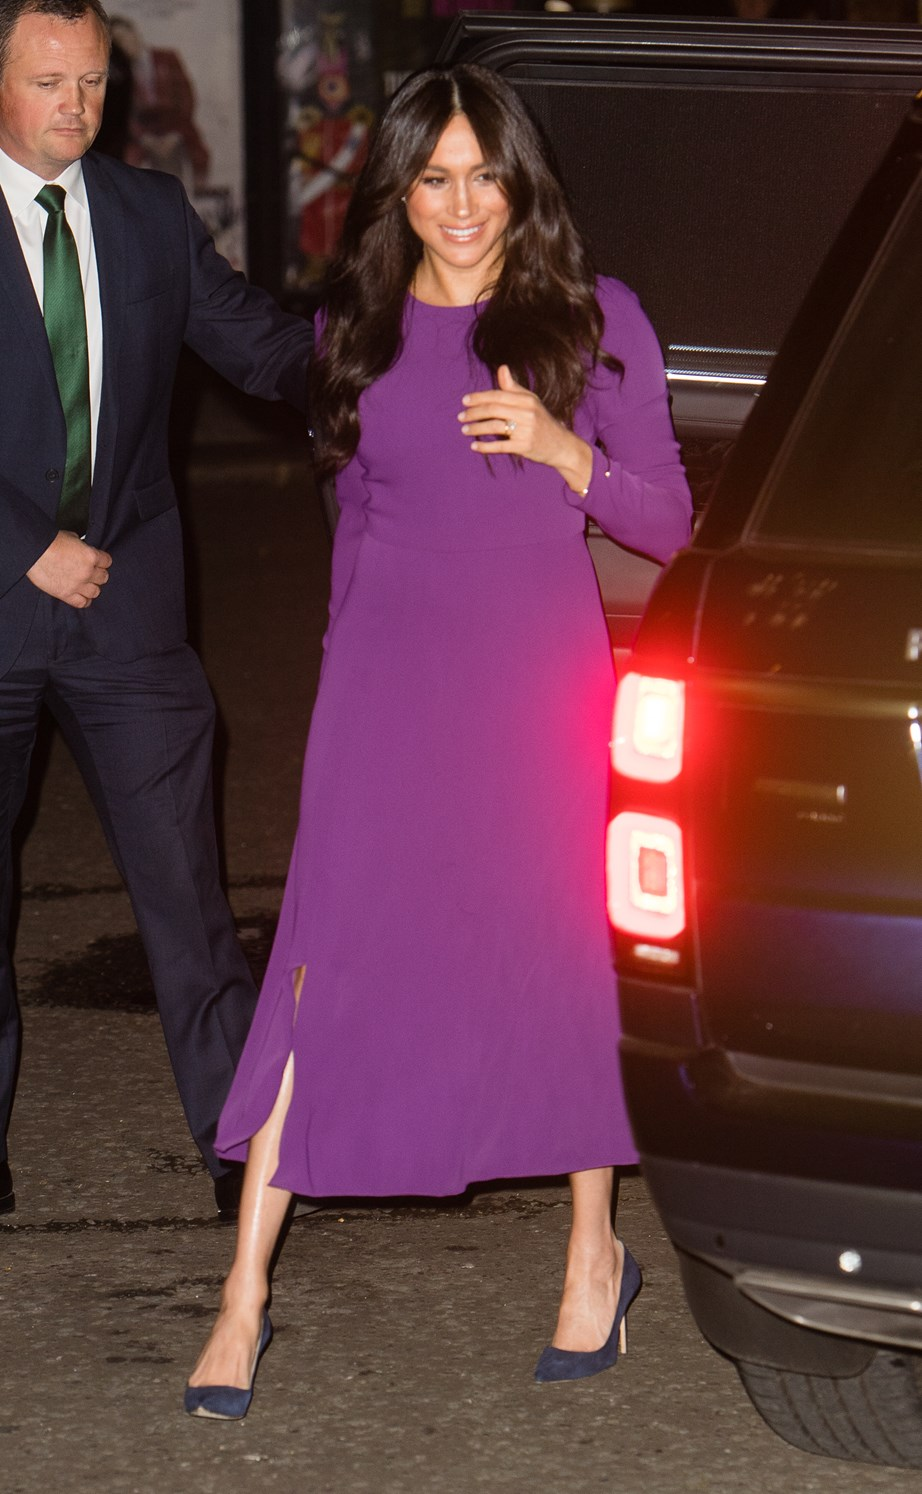 Meghan looked radiant as she stepped out for her first engagement since the airing of her and Harry's emotional documentary. *(Image: Getty)*